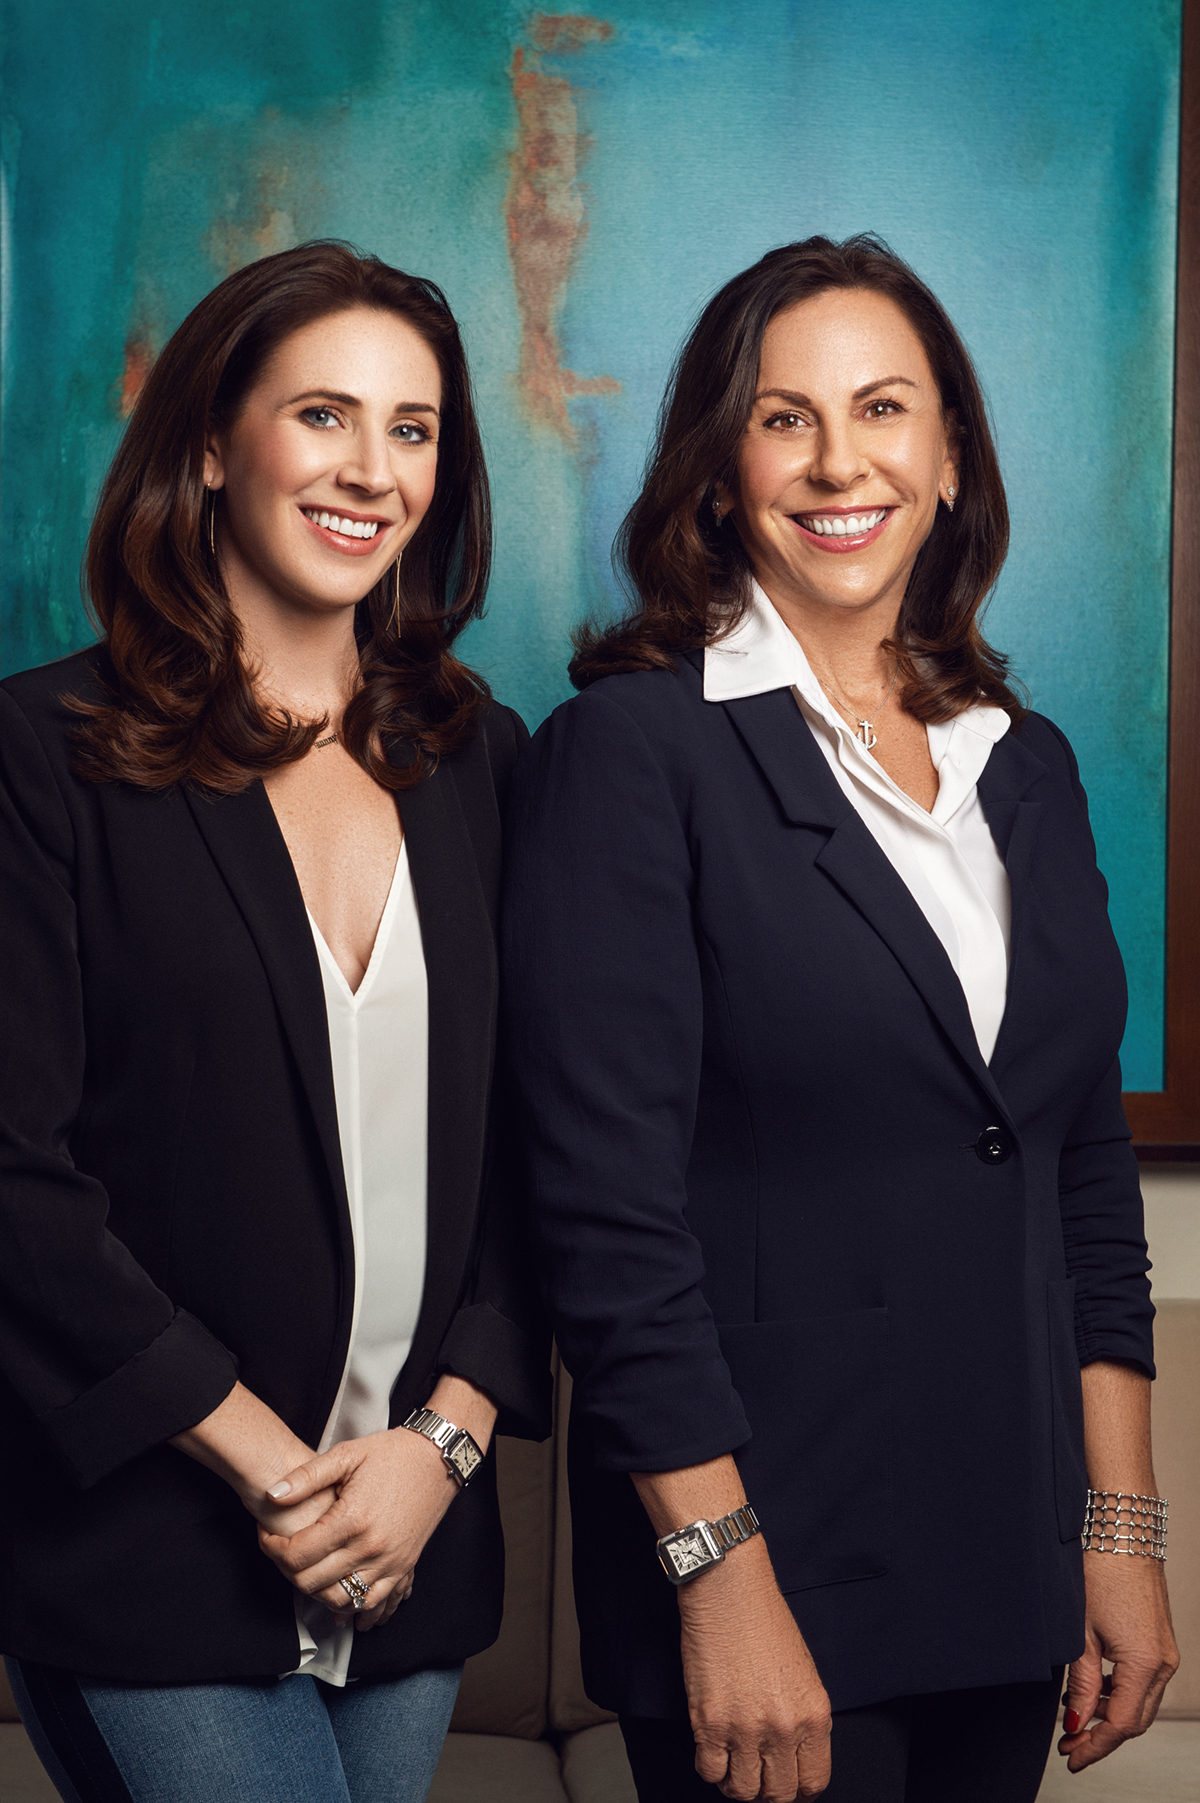 Imalac founders Rachael Kish and Noreen Sablotsky